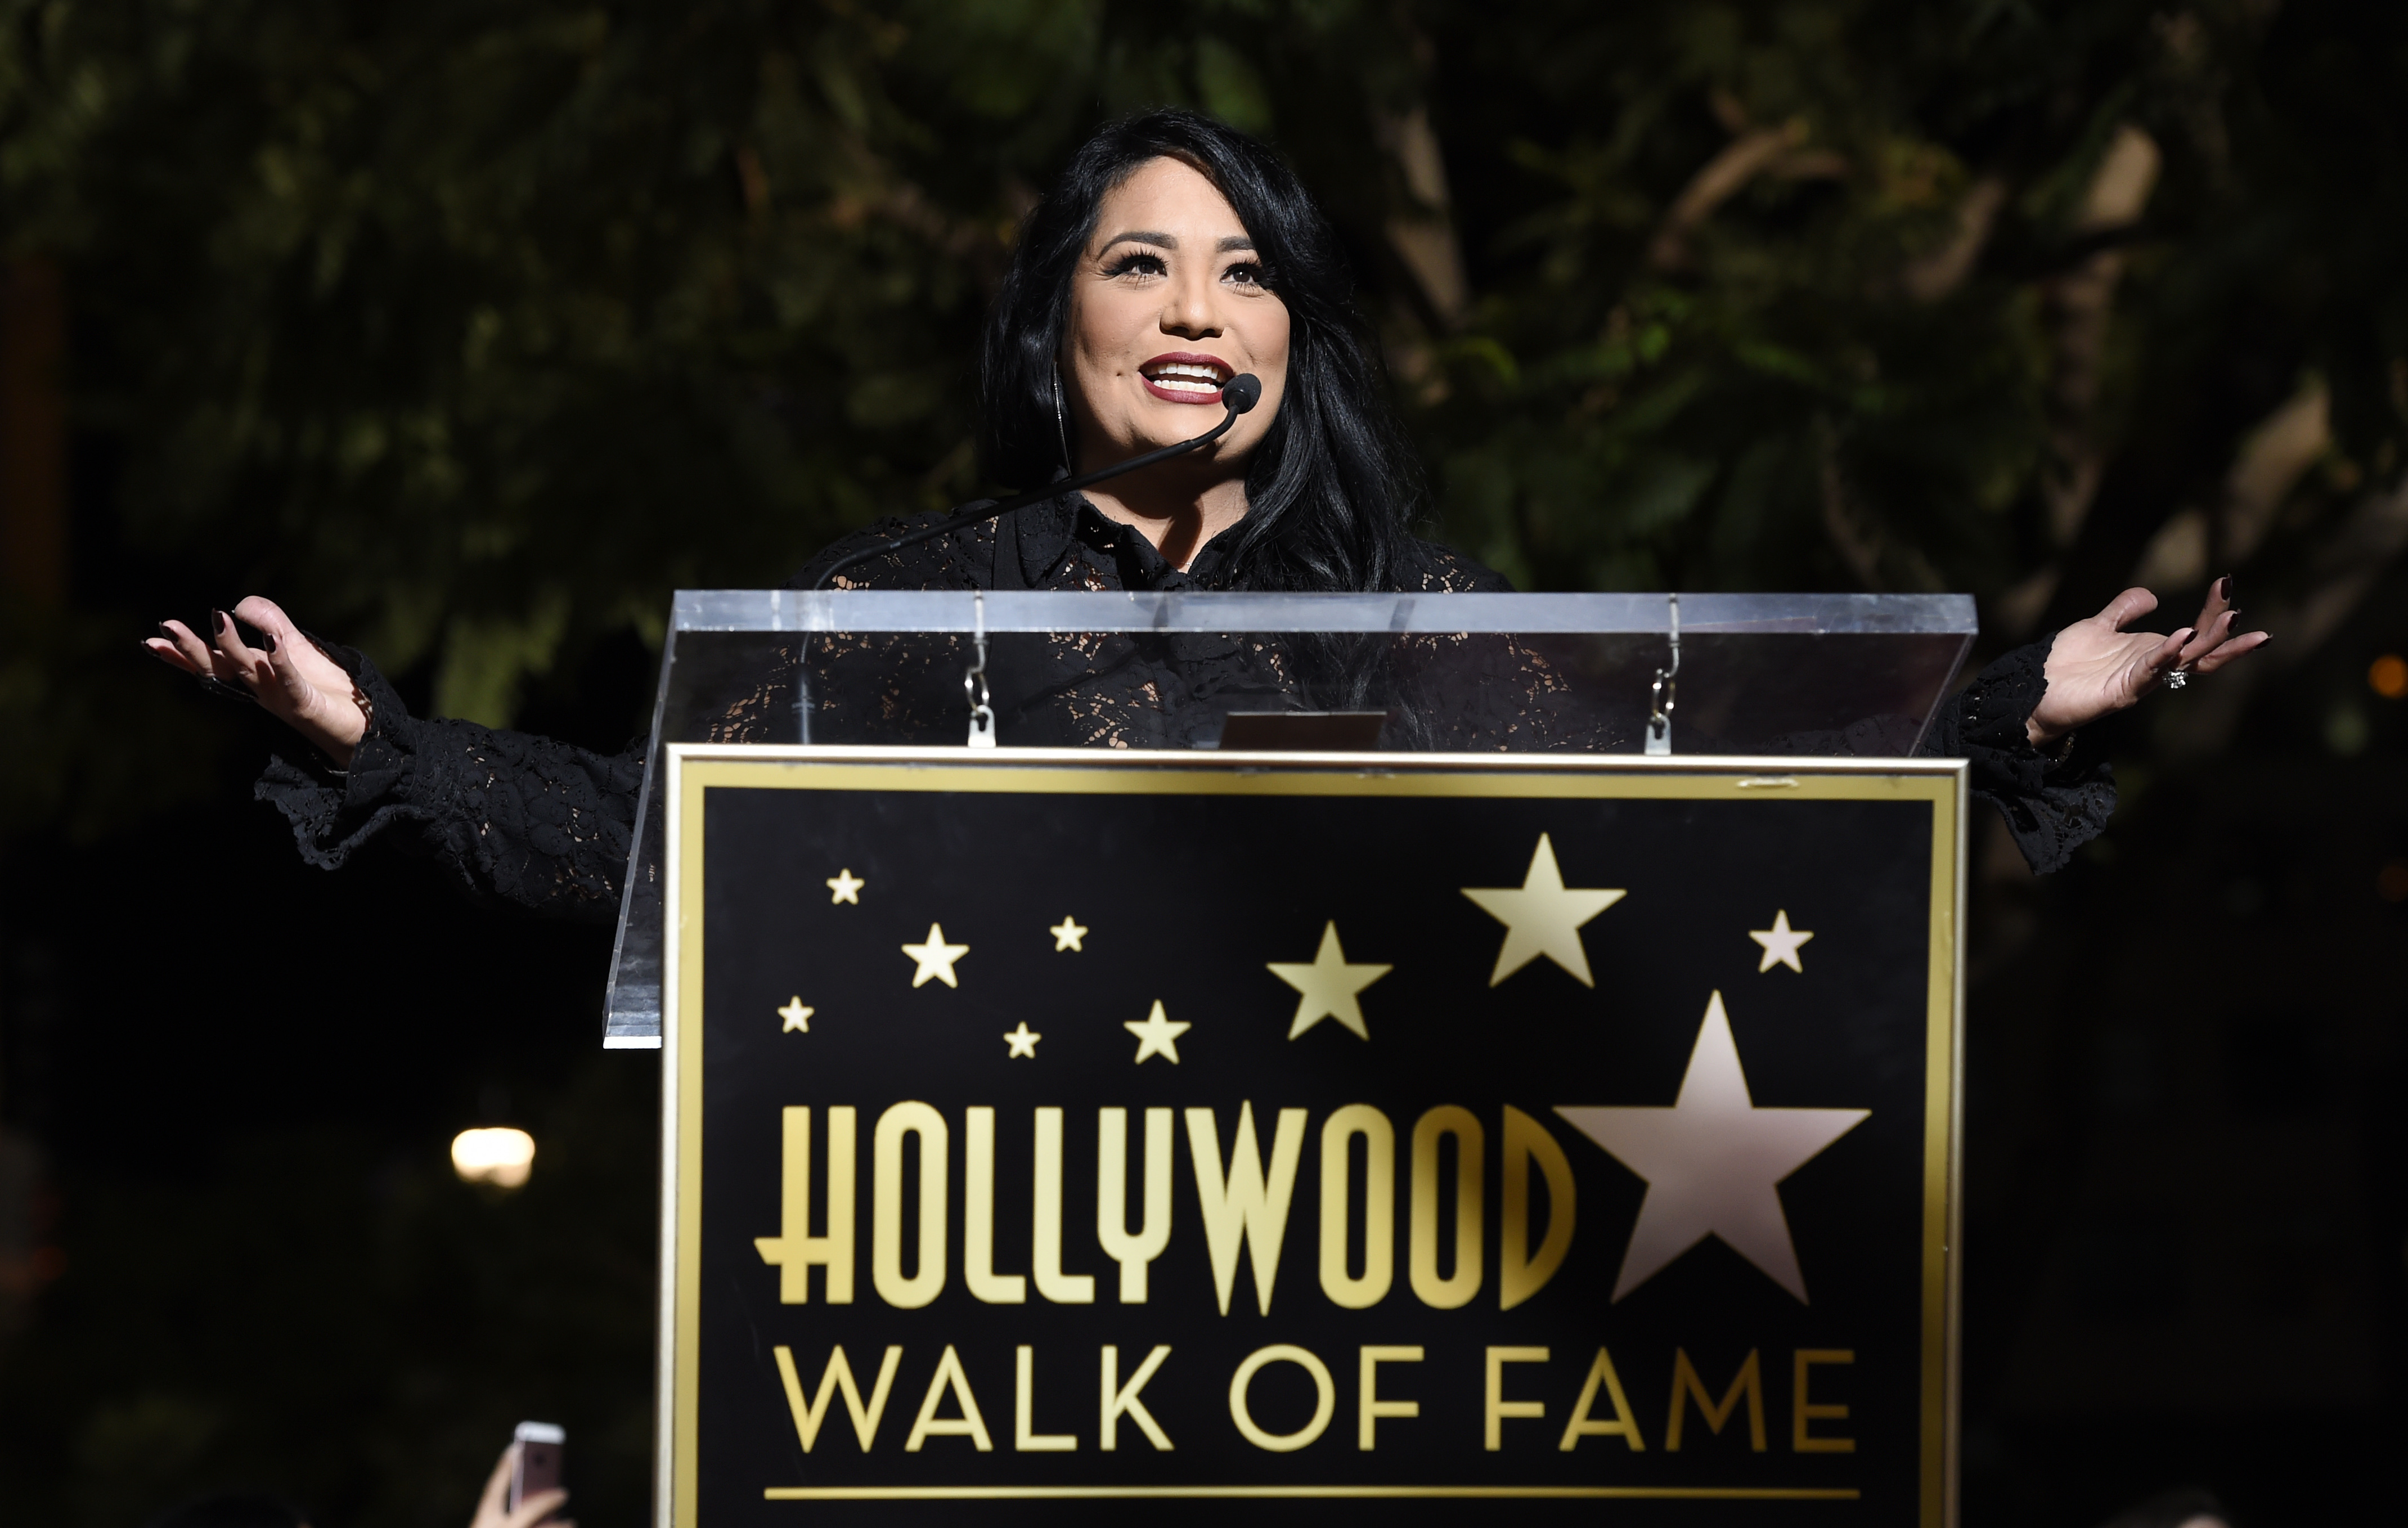 <div class='meta'><div class='origin-logo' data-origin='none'></div><span class='caption-text' data-credit='Chris Pizzello/Invision/AP'>Suzette Quintanilla, sister of the late singer Selena Quintanilla, addresses the crowd during a posthumous star ceremony for Selena on the Hollywood Walk of Fame.</span></div>